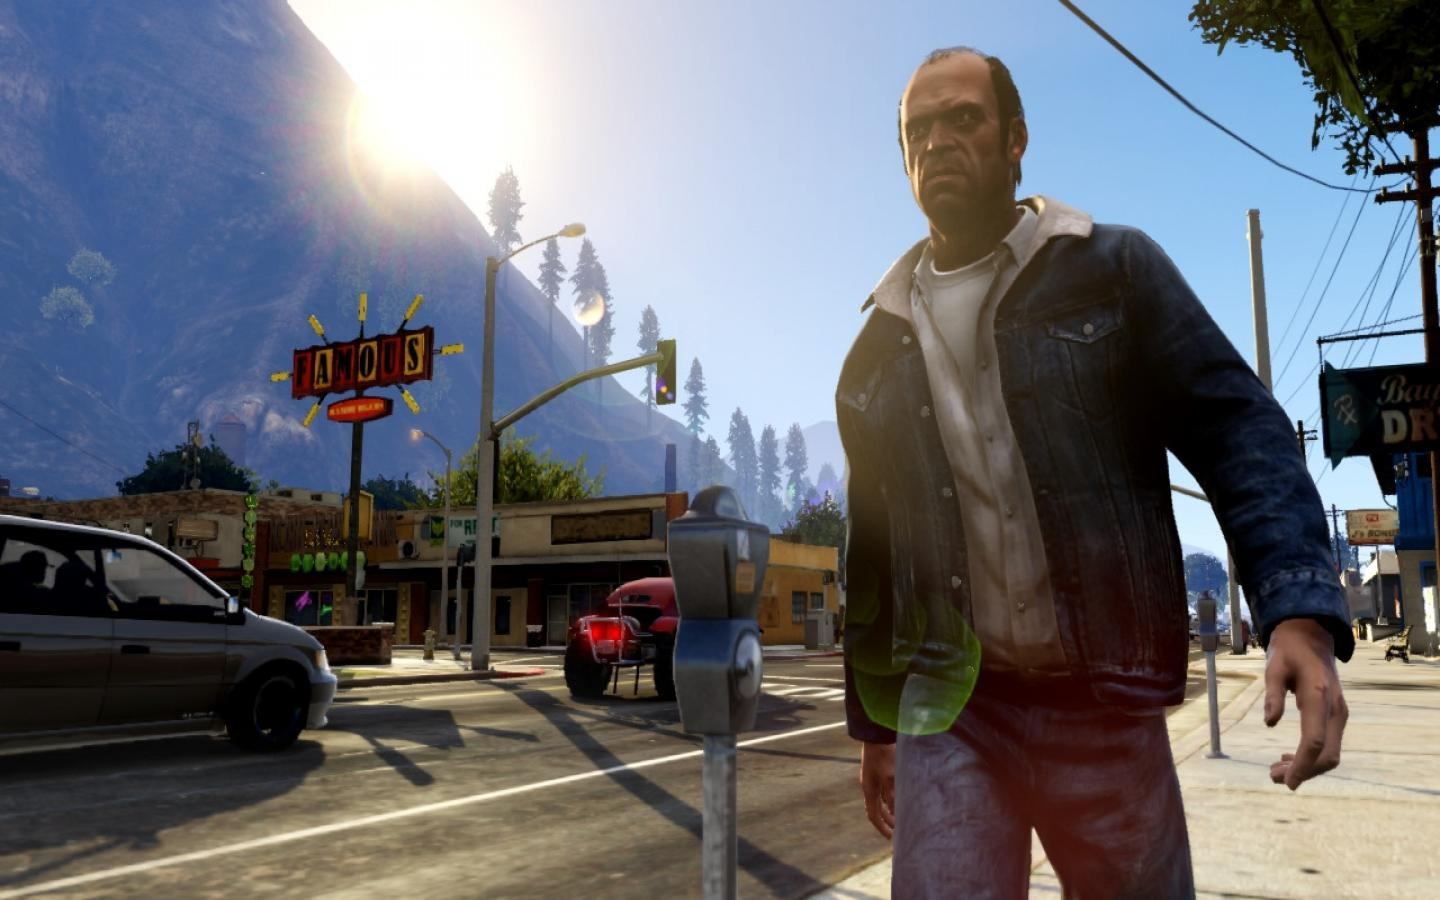 GTA V HD Wallpapers 1440x900 Game Wallpapers 1440x900 Download 1440x900